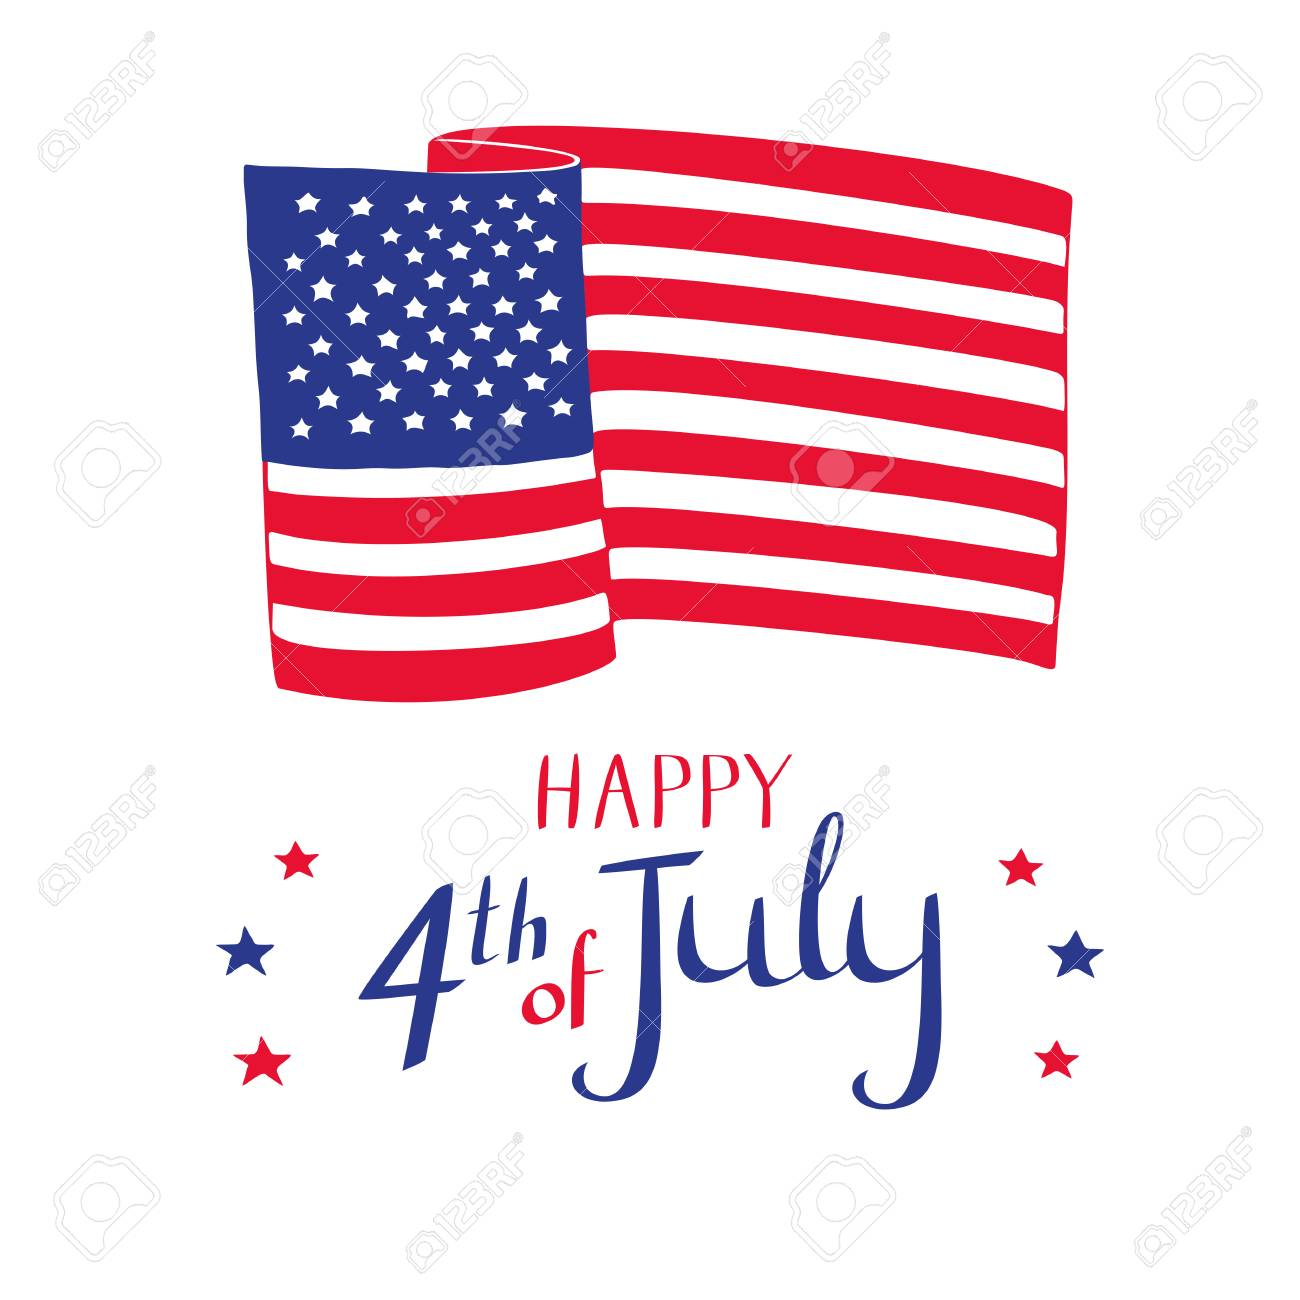 happy 4th of july card hand drawn american flag and stars on